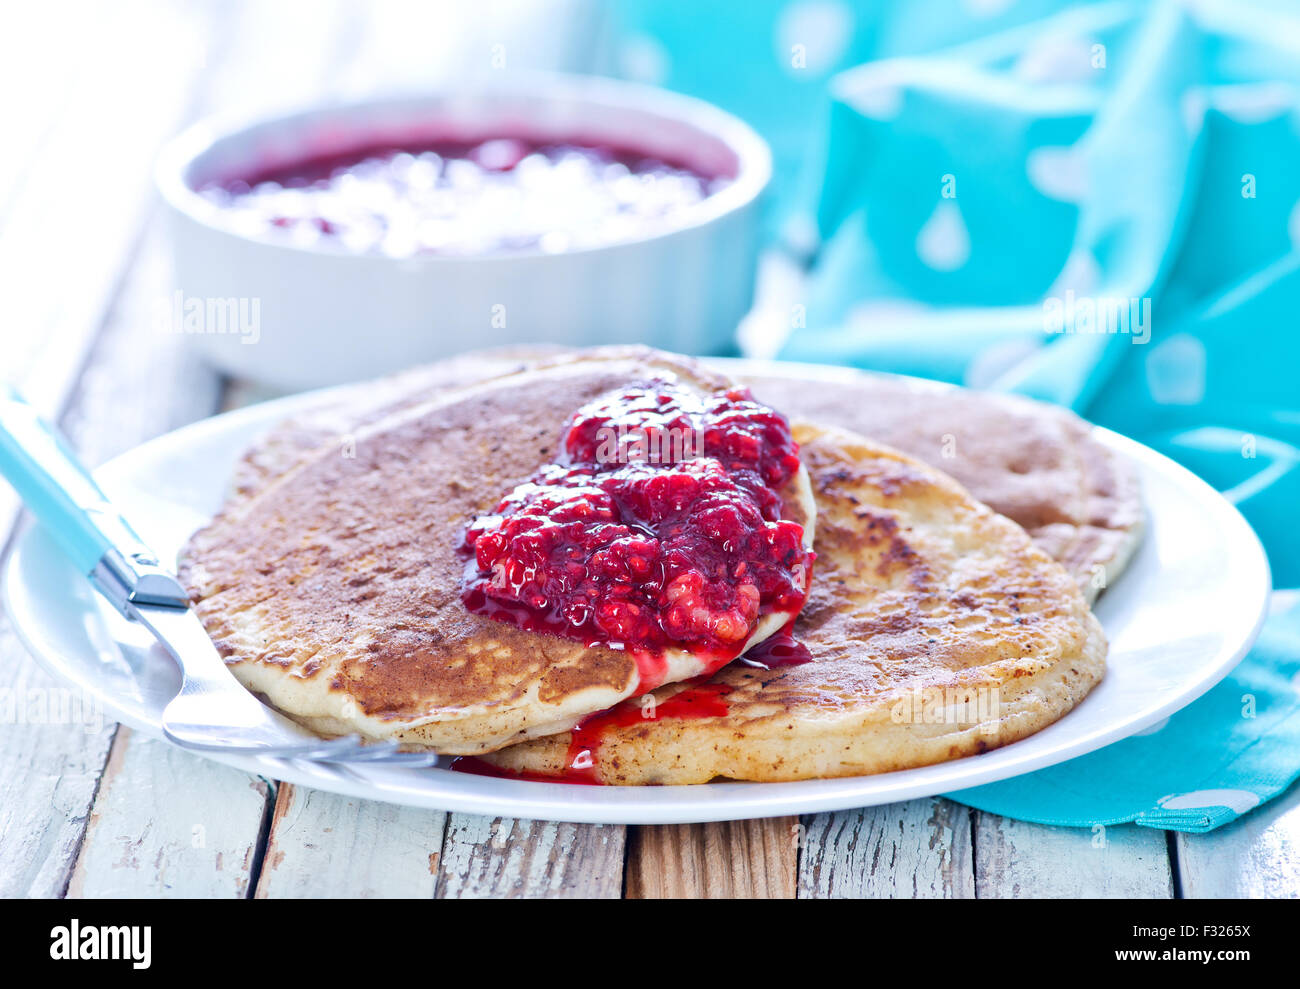 sweet pancakes with jam on the plate - Stock Image